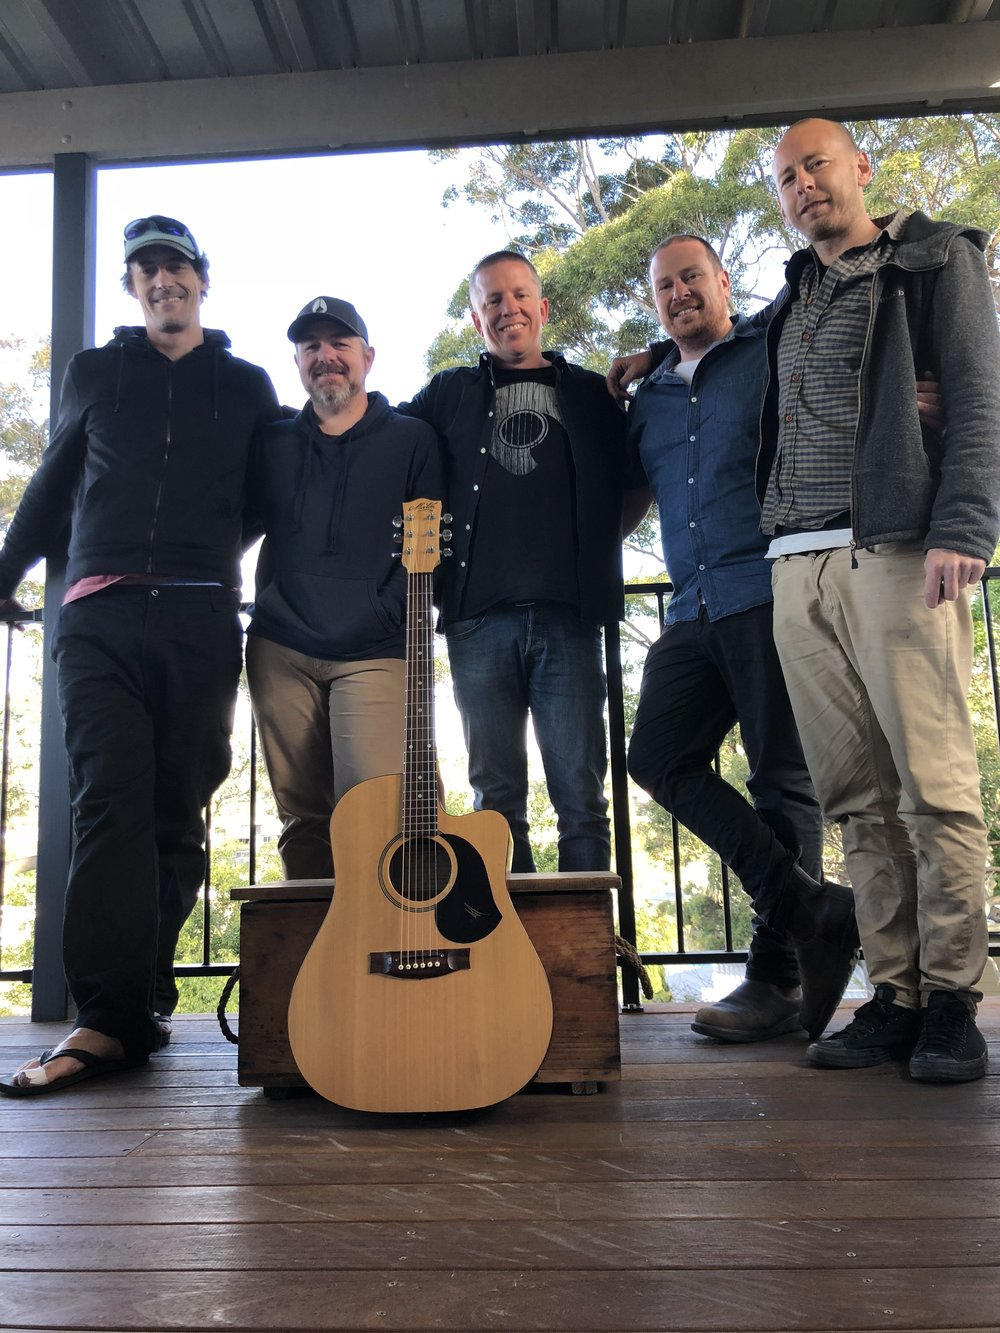 Andrew Carty, Simon Hill, Stephen Askew, Adam Schilli, Ben Russell with the guitar representing the late Simon Lambert.jpeg